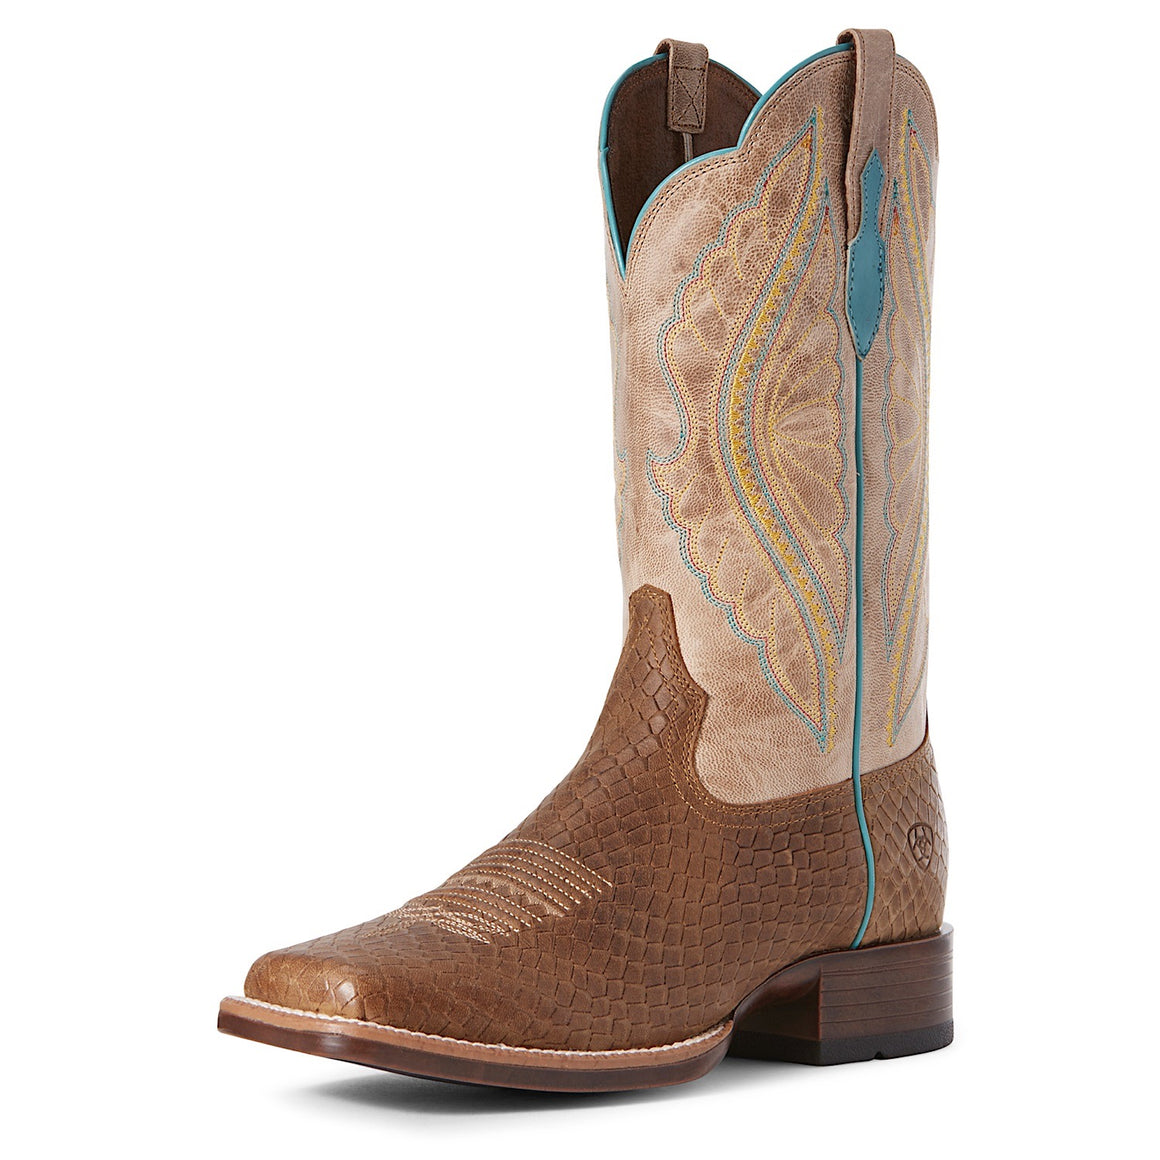 Ariat Womens Prime Time Western Boot Hollin Dragon/Jackel Tan